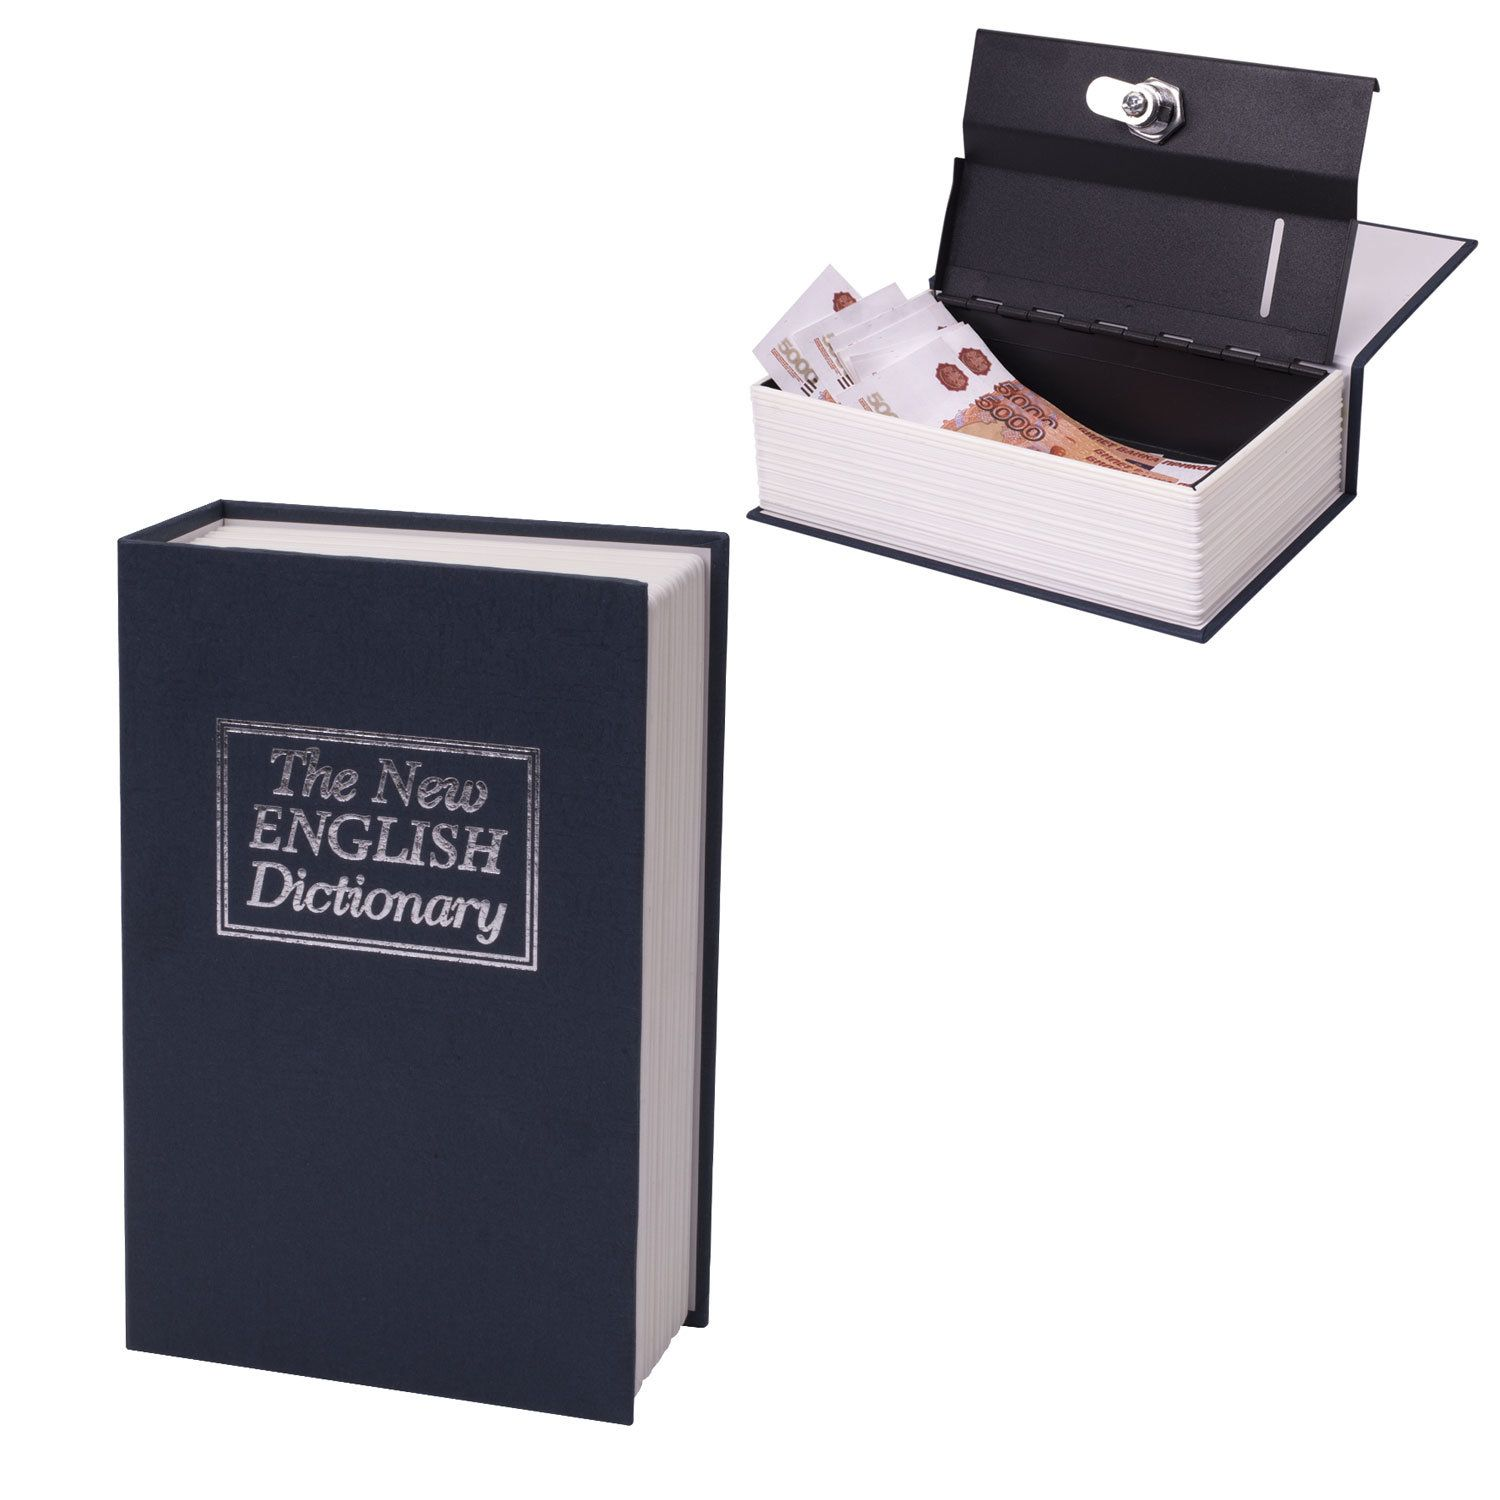 "Safe-book BRAUBERG ""English Dictionary"", 55x155x235 mm, key lock, dark blue"